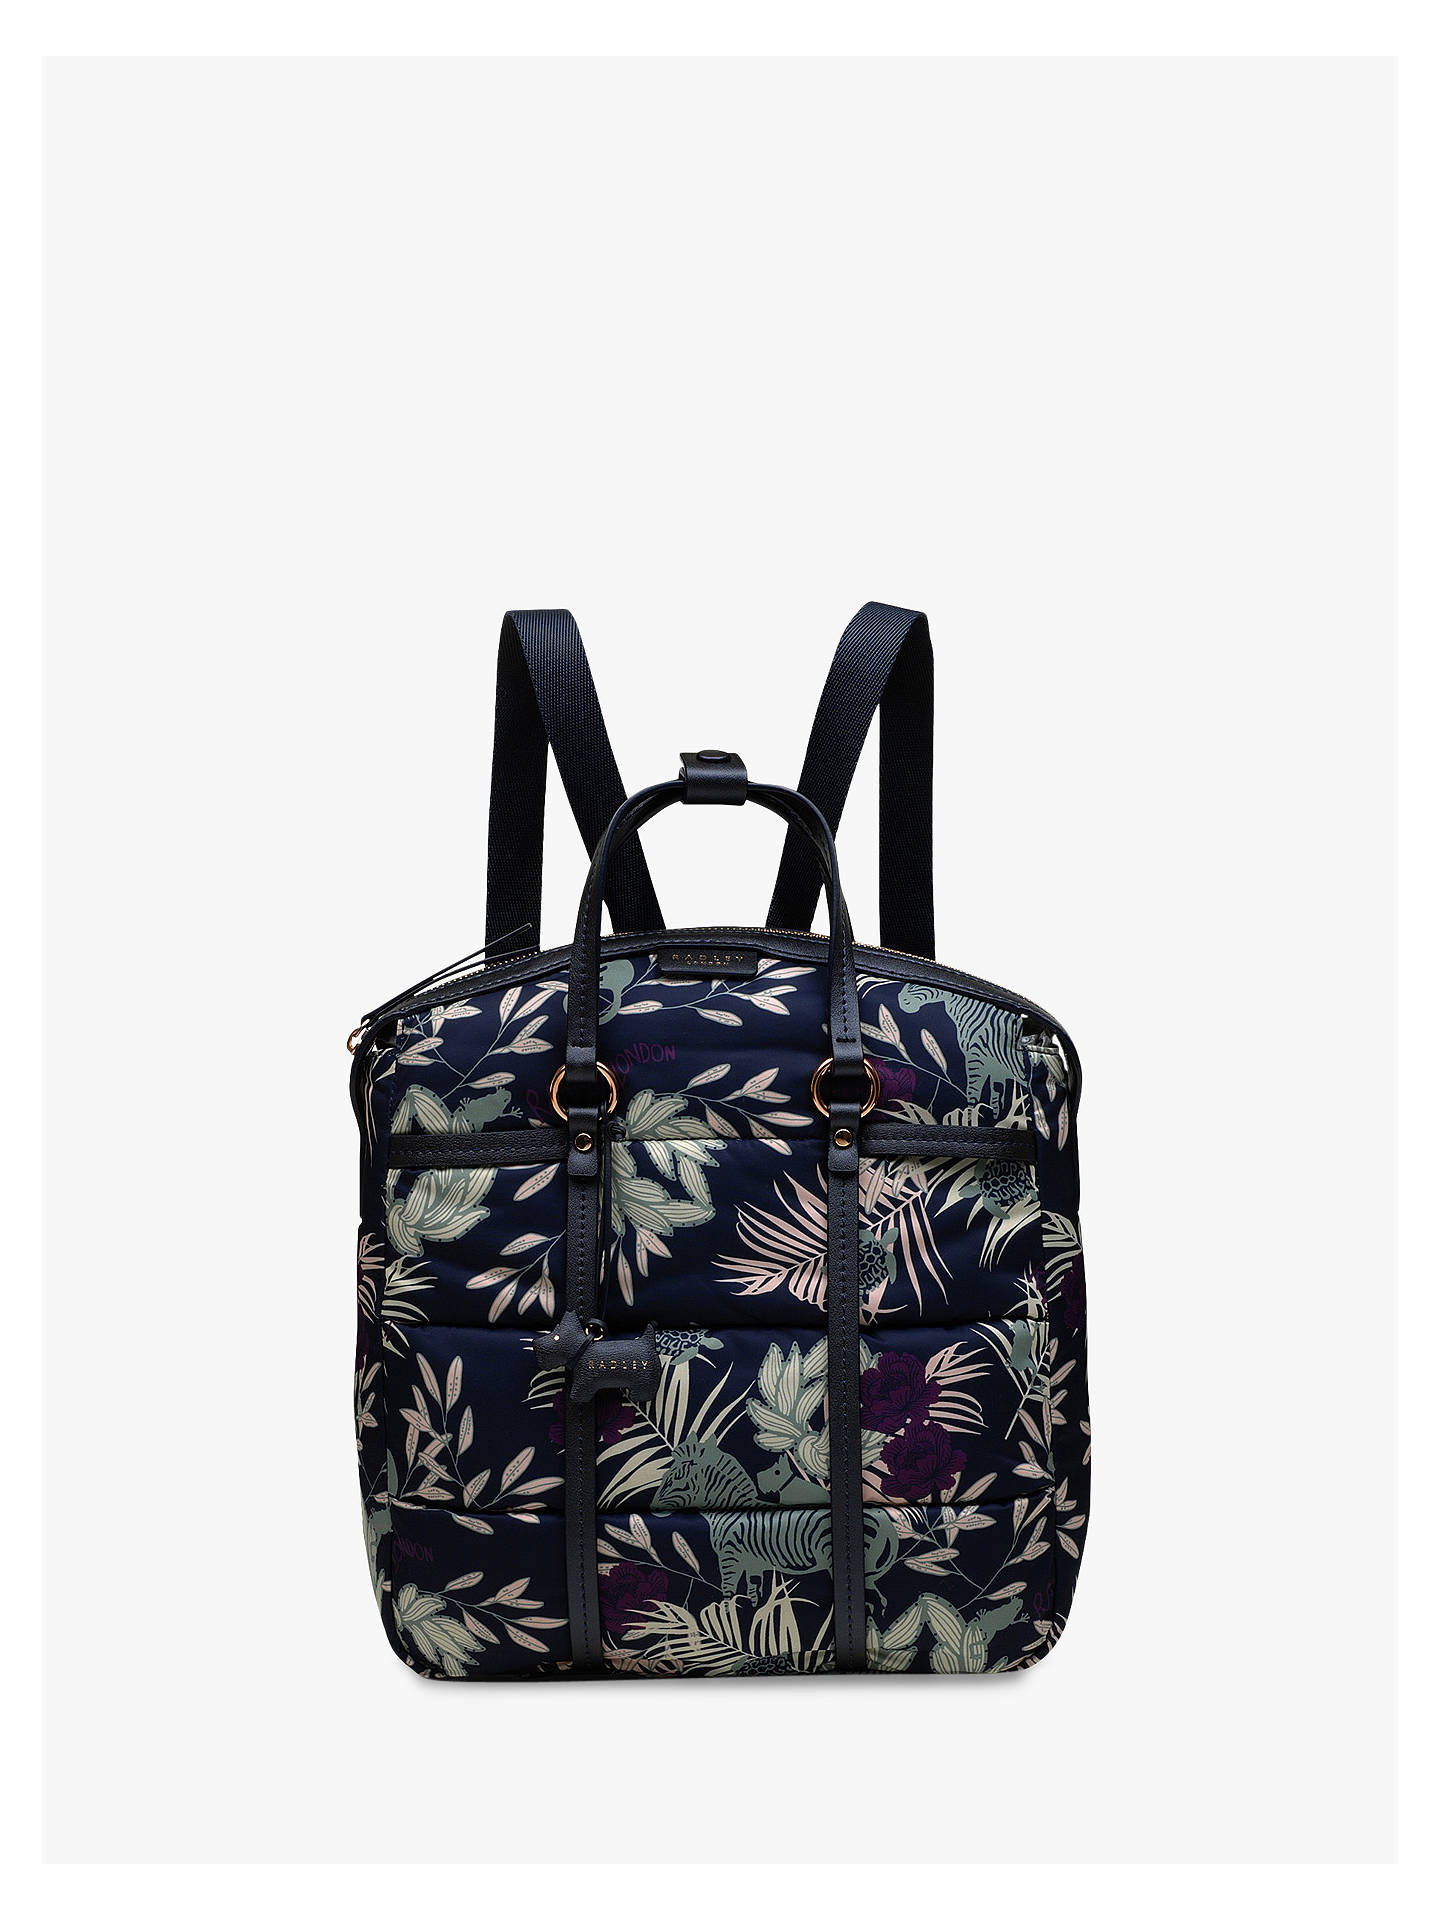 8c68dad4f1 Buy Radley Longleat Palms Backpack